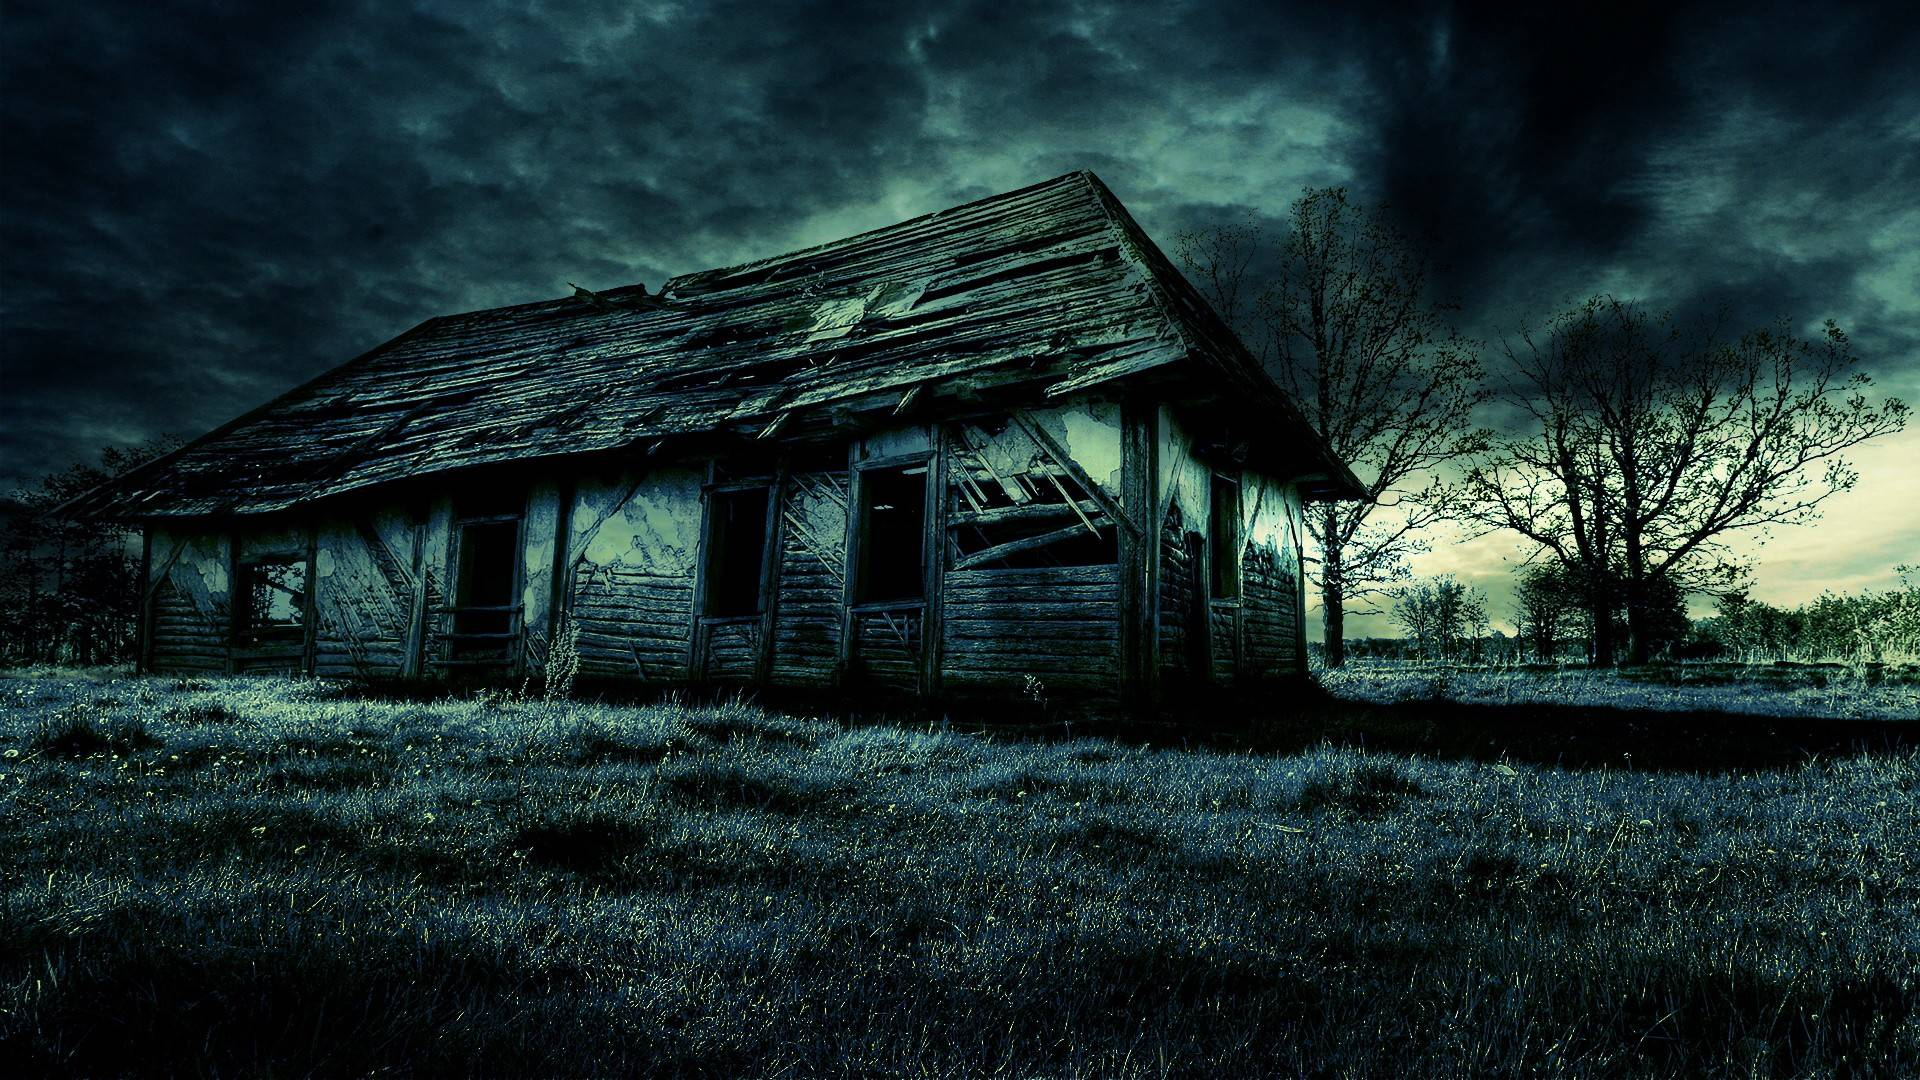 wallpaper gothic wallpapers 1920x1080 1920x1080